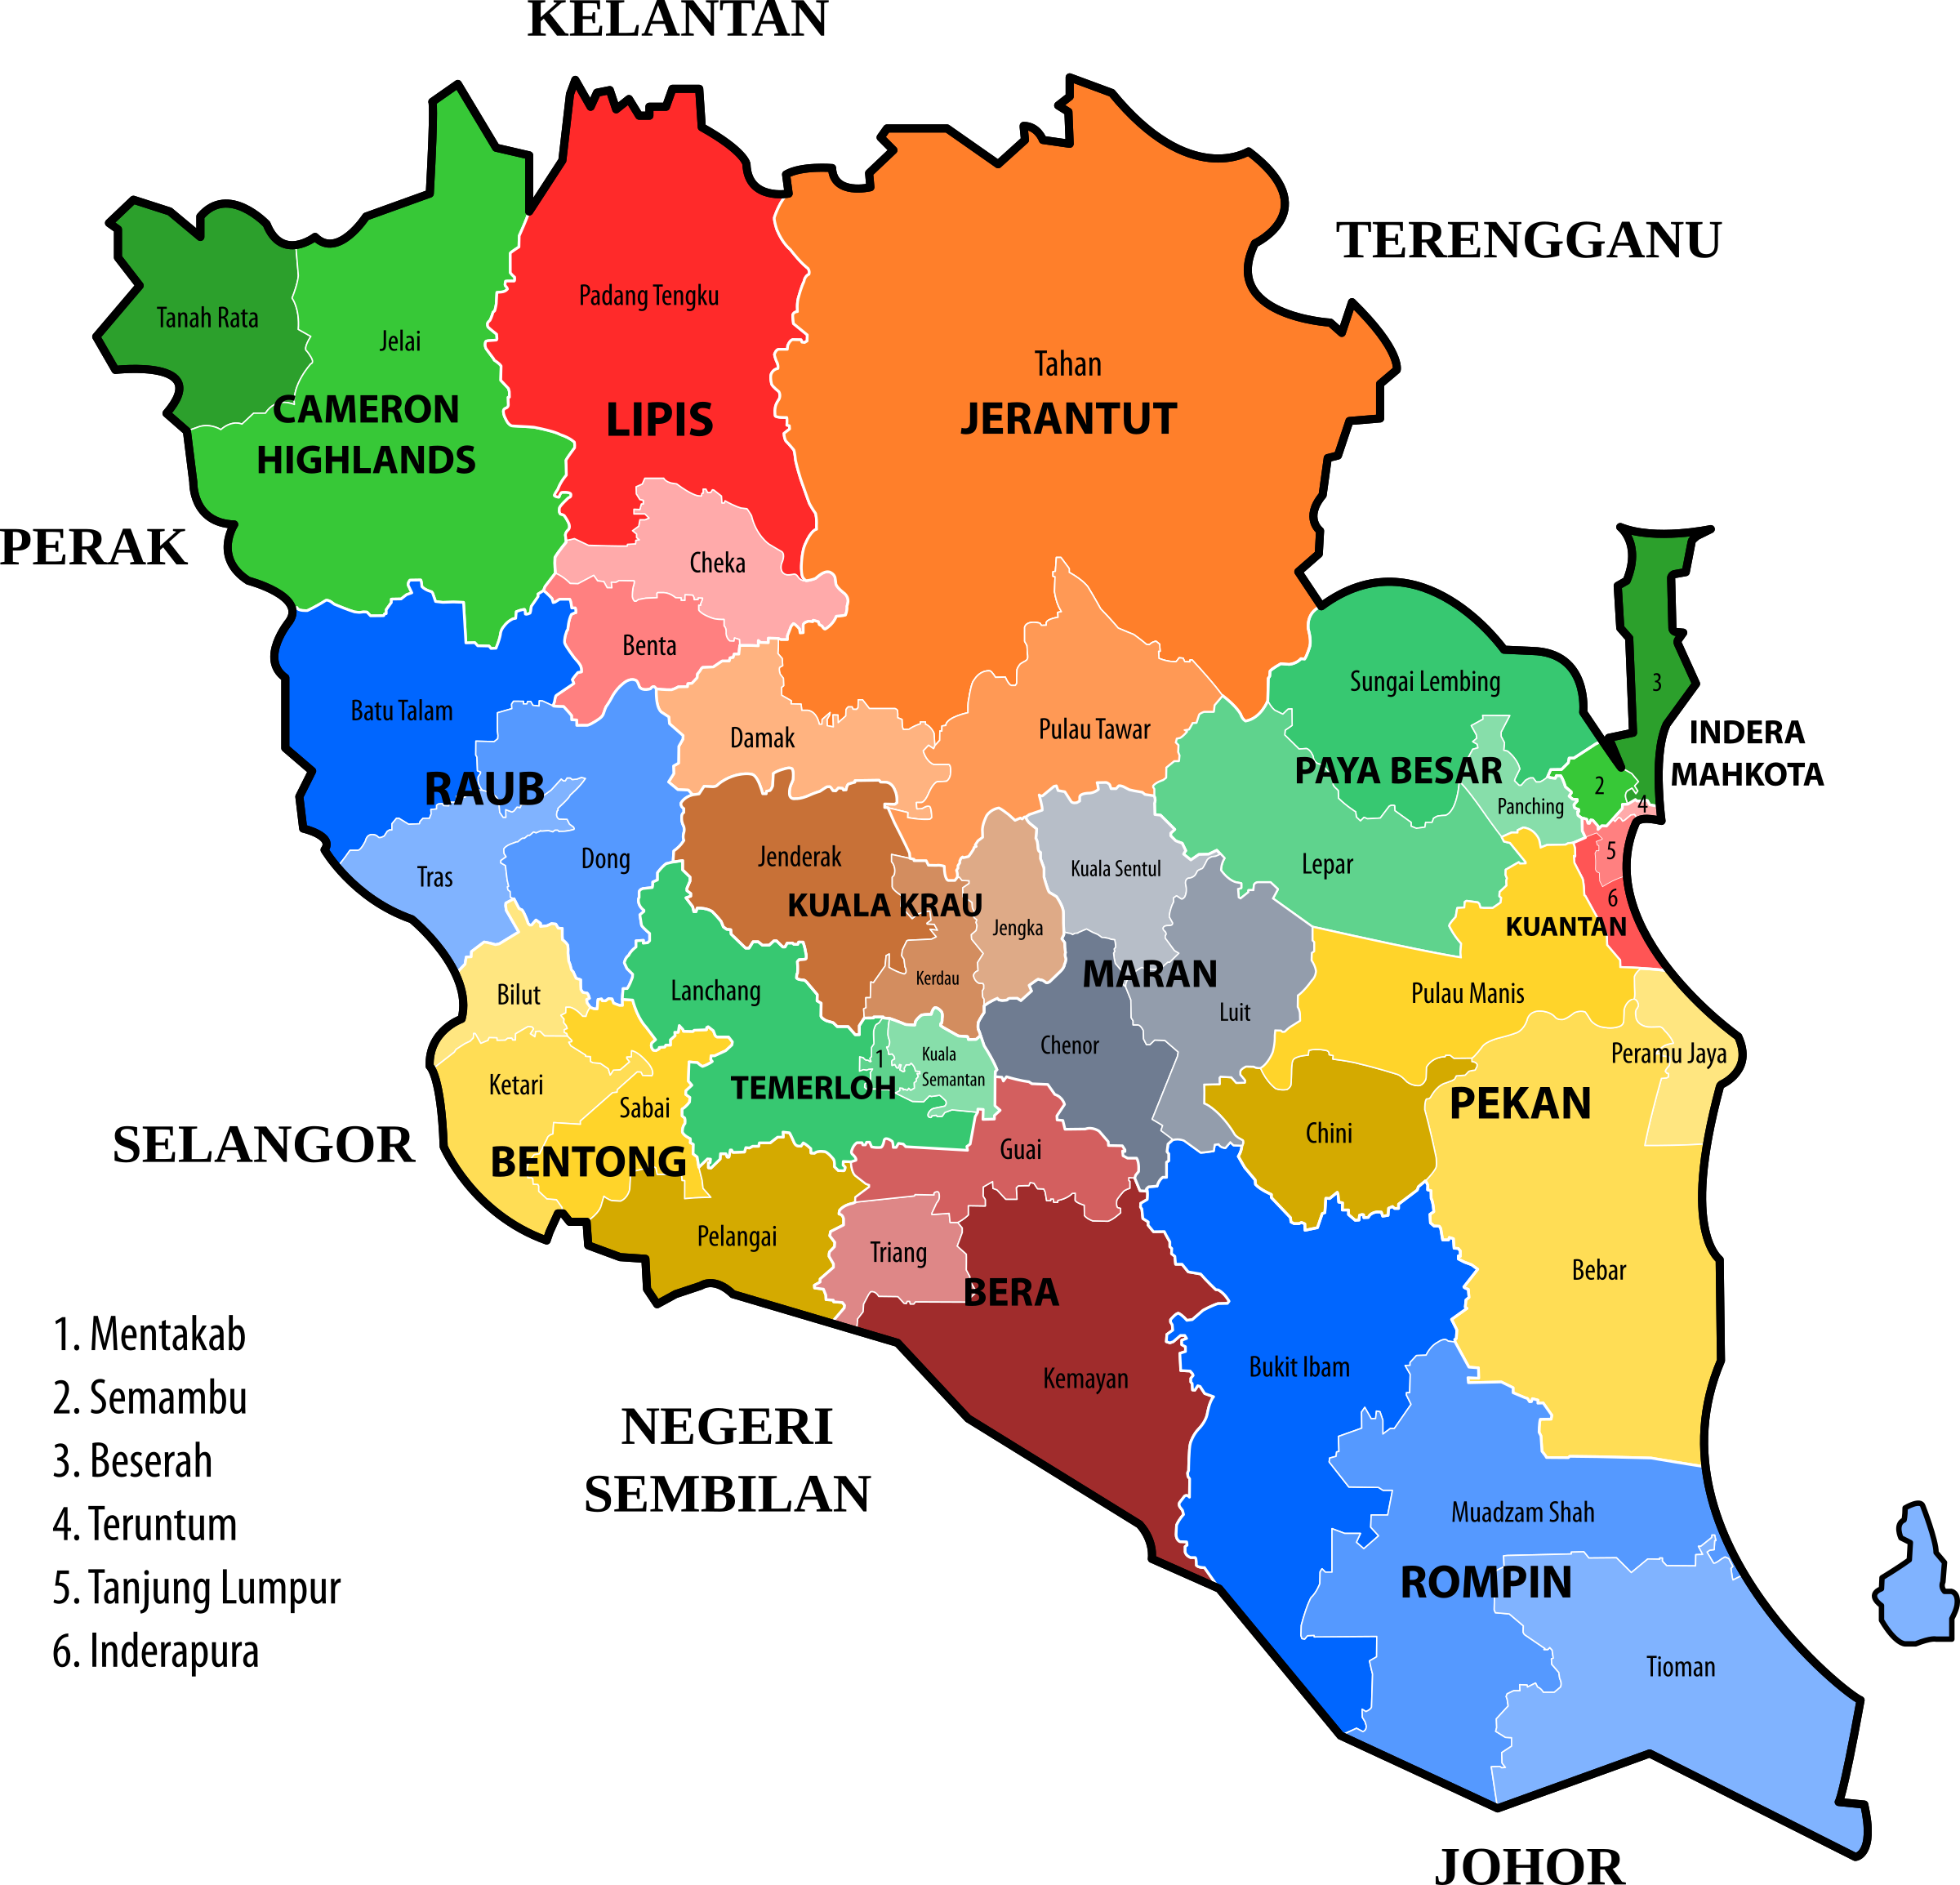 Pahang new electoral map (March 2017 proposal) by derkommander0916